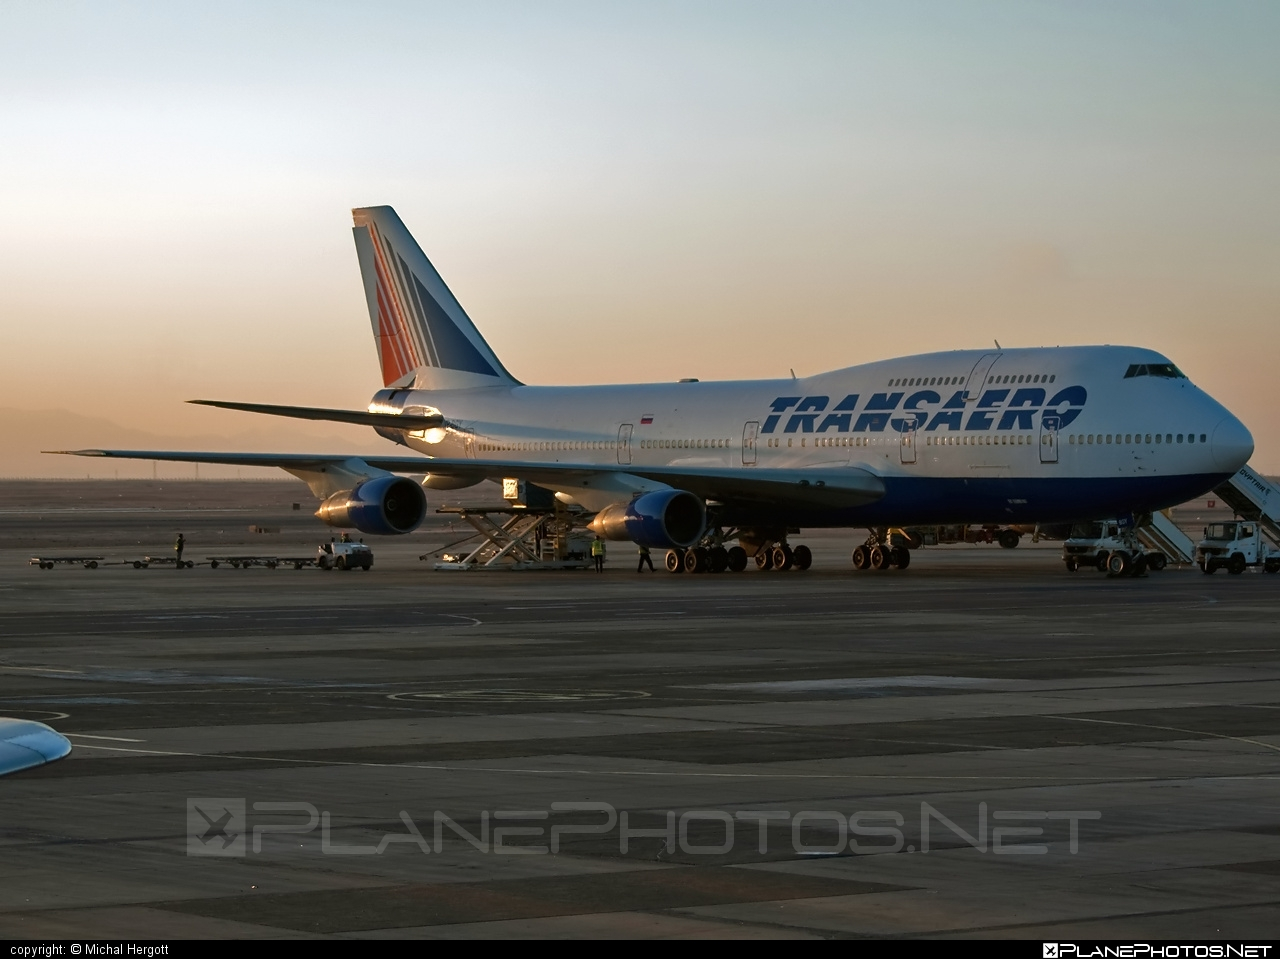 Boeing 747-300 - VP-BGY operated by Transaero Airlines #b747 #boeing #boeing747 #jumbo #transaero #transaeroairlines